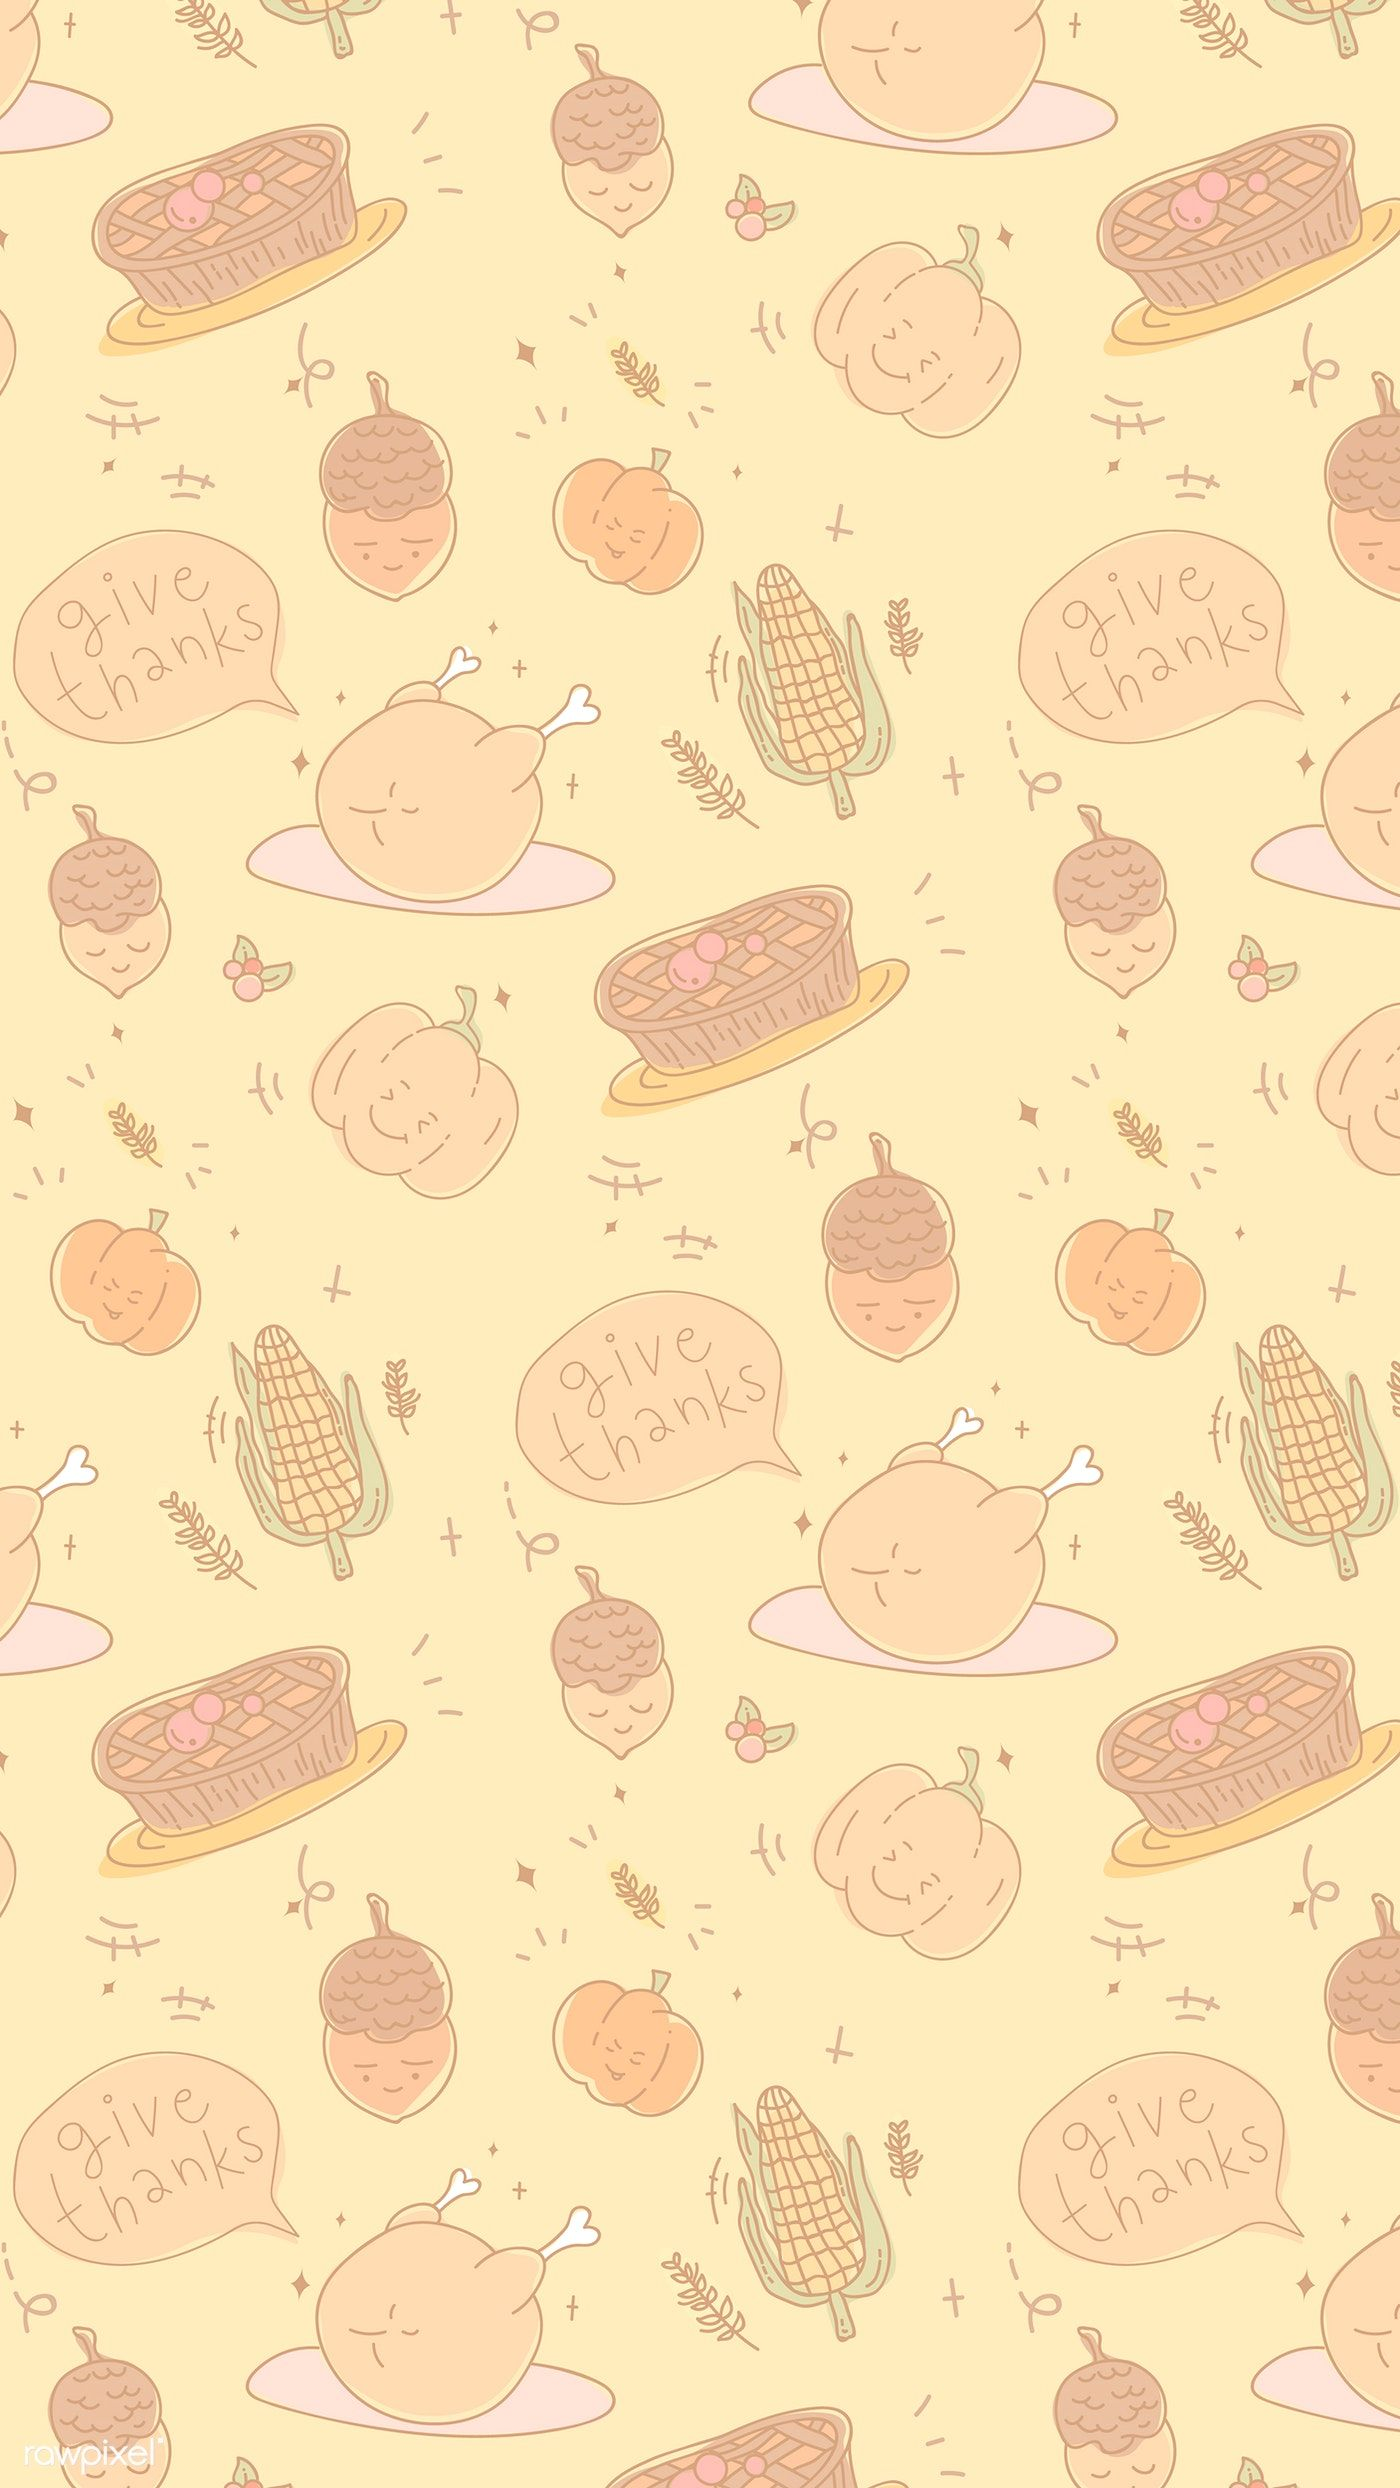 Download Premium Vector Of Thanksgiving Elements Seamless Patterned Mobile Thanksgiving Iphone Wallpaper Thanksgiving Wallpaper Holiday Wallpaper